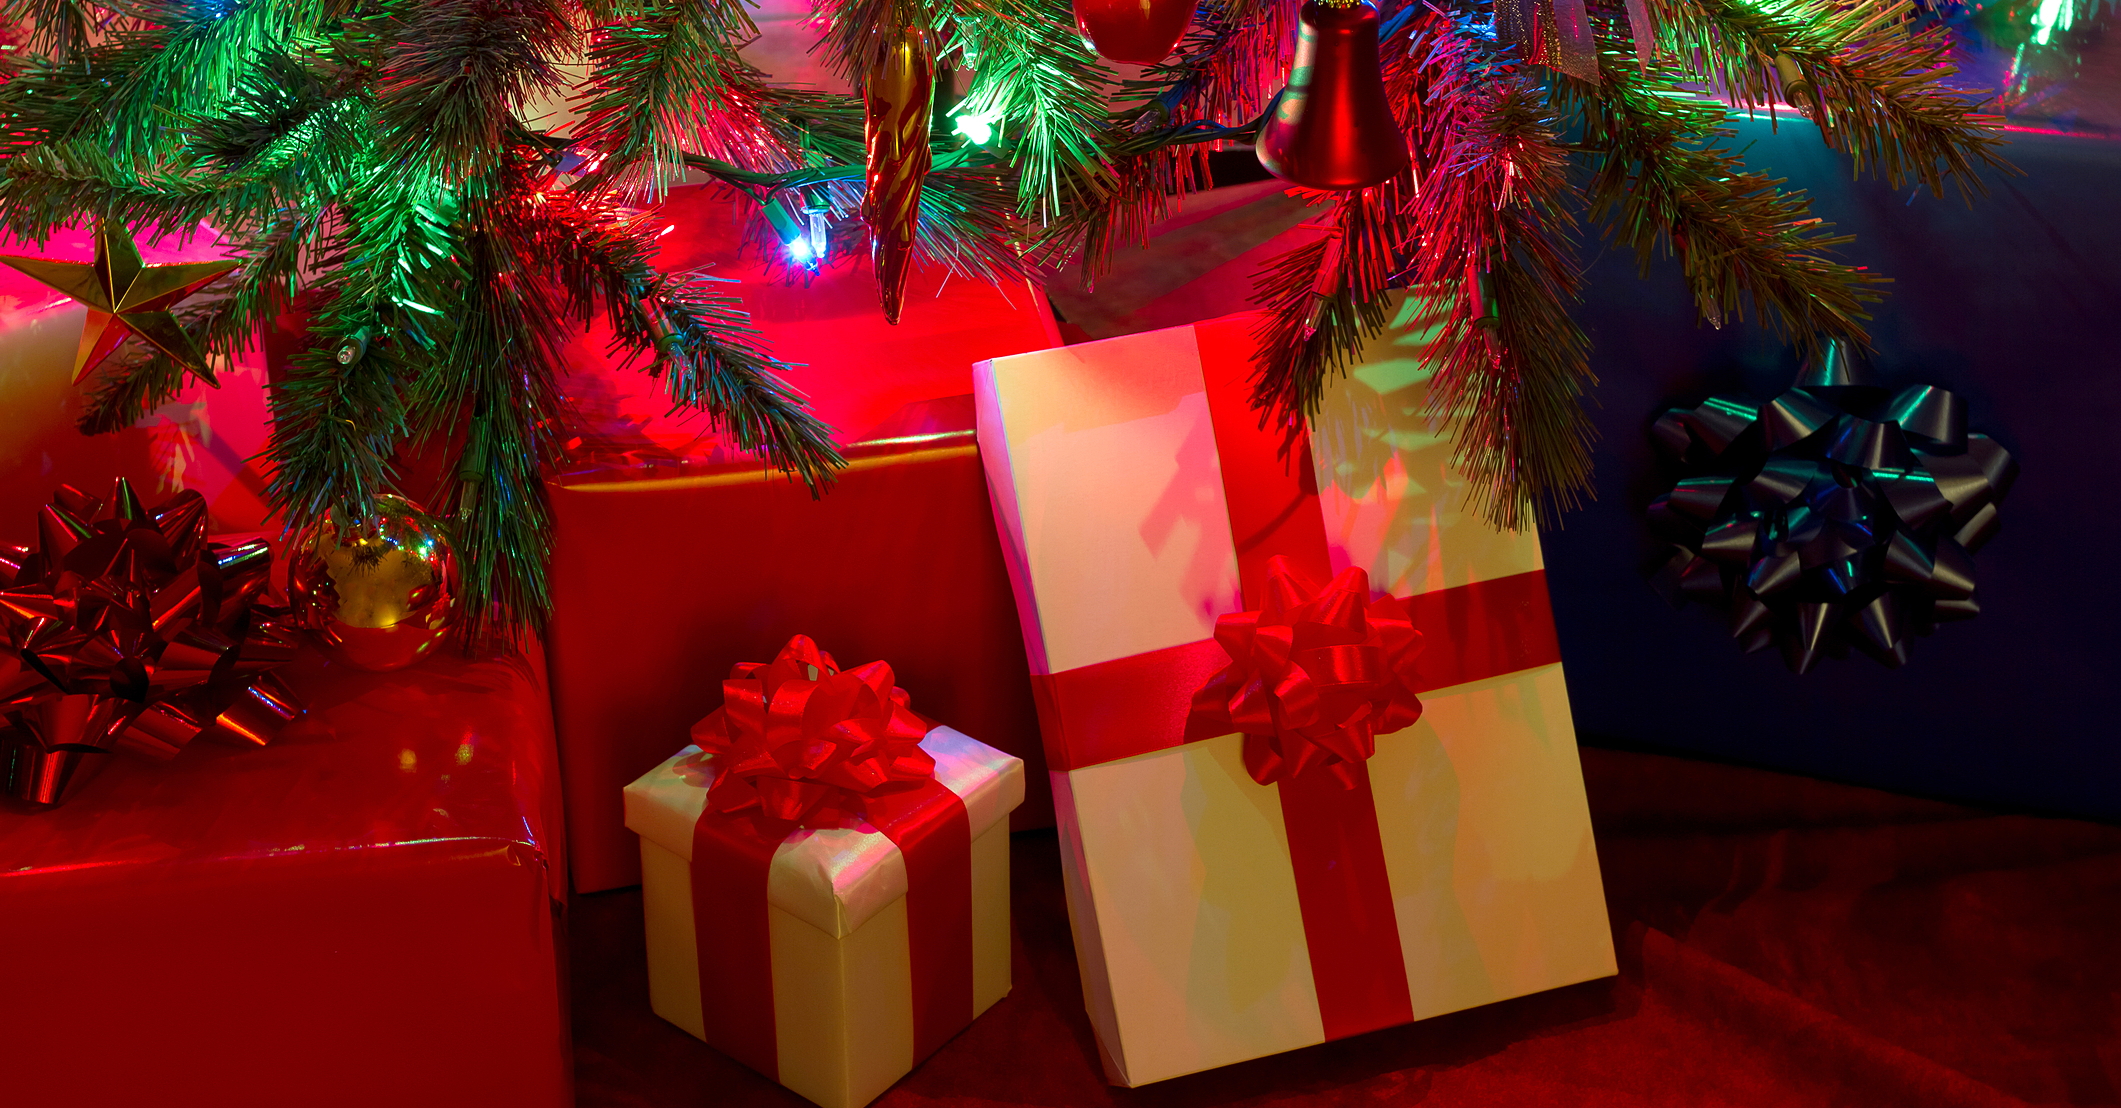 Automotive Gift Guide for the Holidays